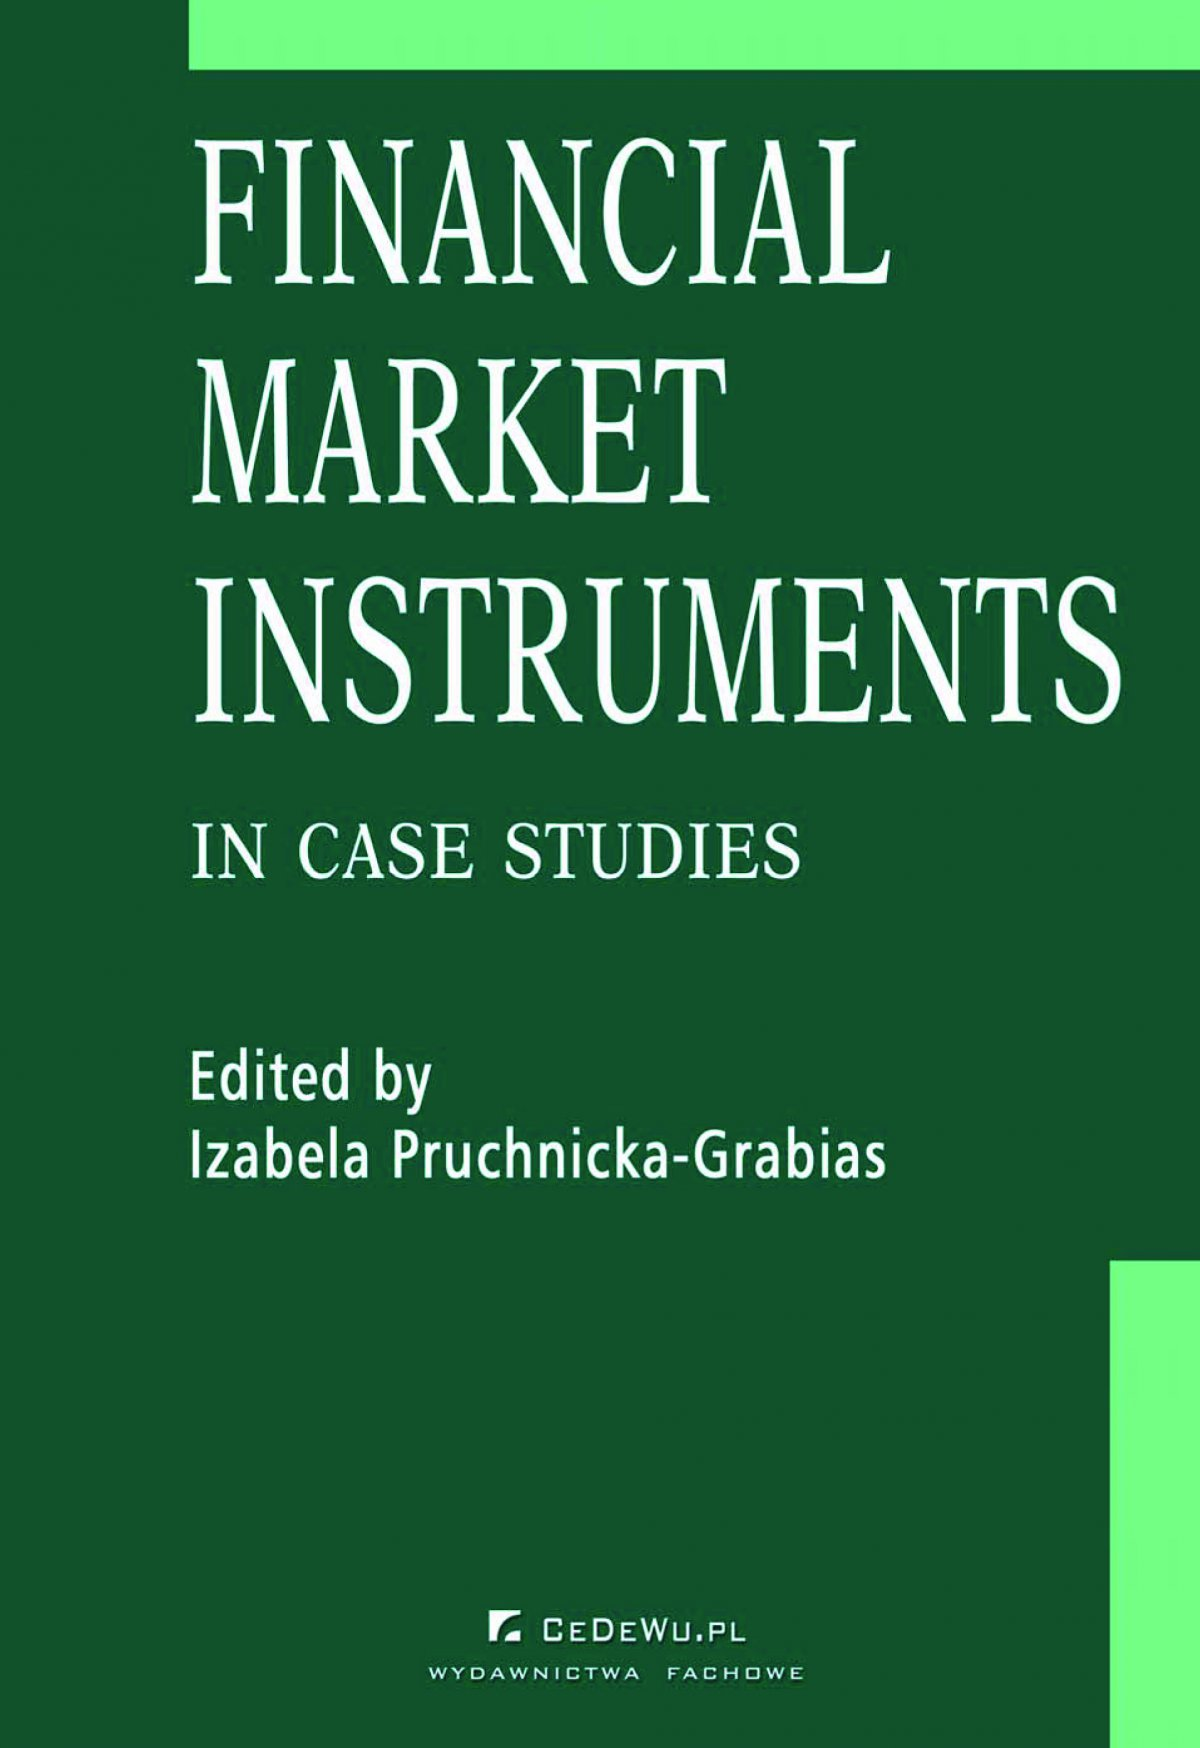 Financial market instruments in case studies. Chapter 5. Credit Derivatives in the United States and Poland – Reasons for Differences in Development Stages – Paweł Niedziółka - Ebook (Książka PDF) do pobrania w formacie PDF